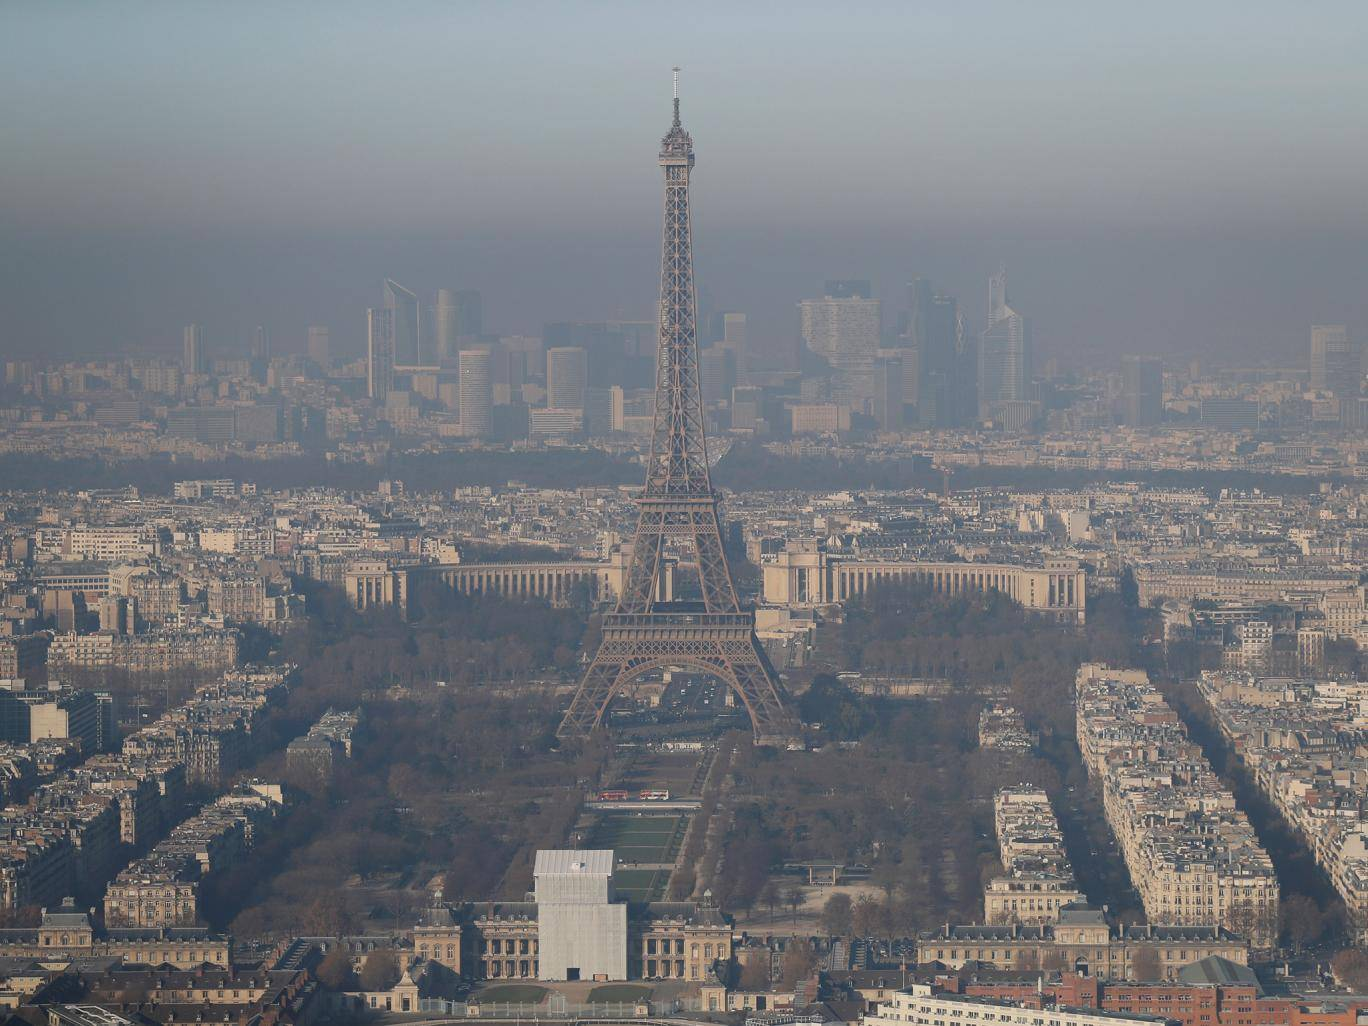 Paris considers making public transport free to reduce pollution